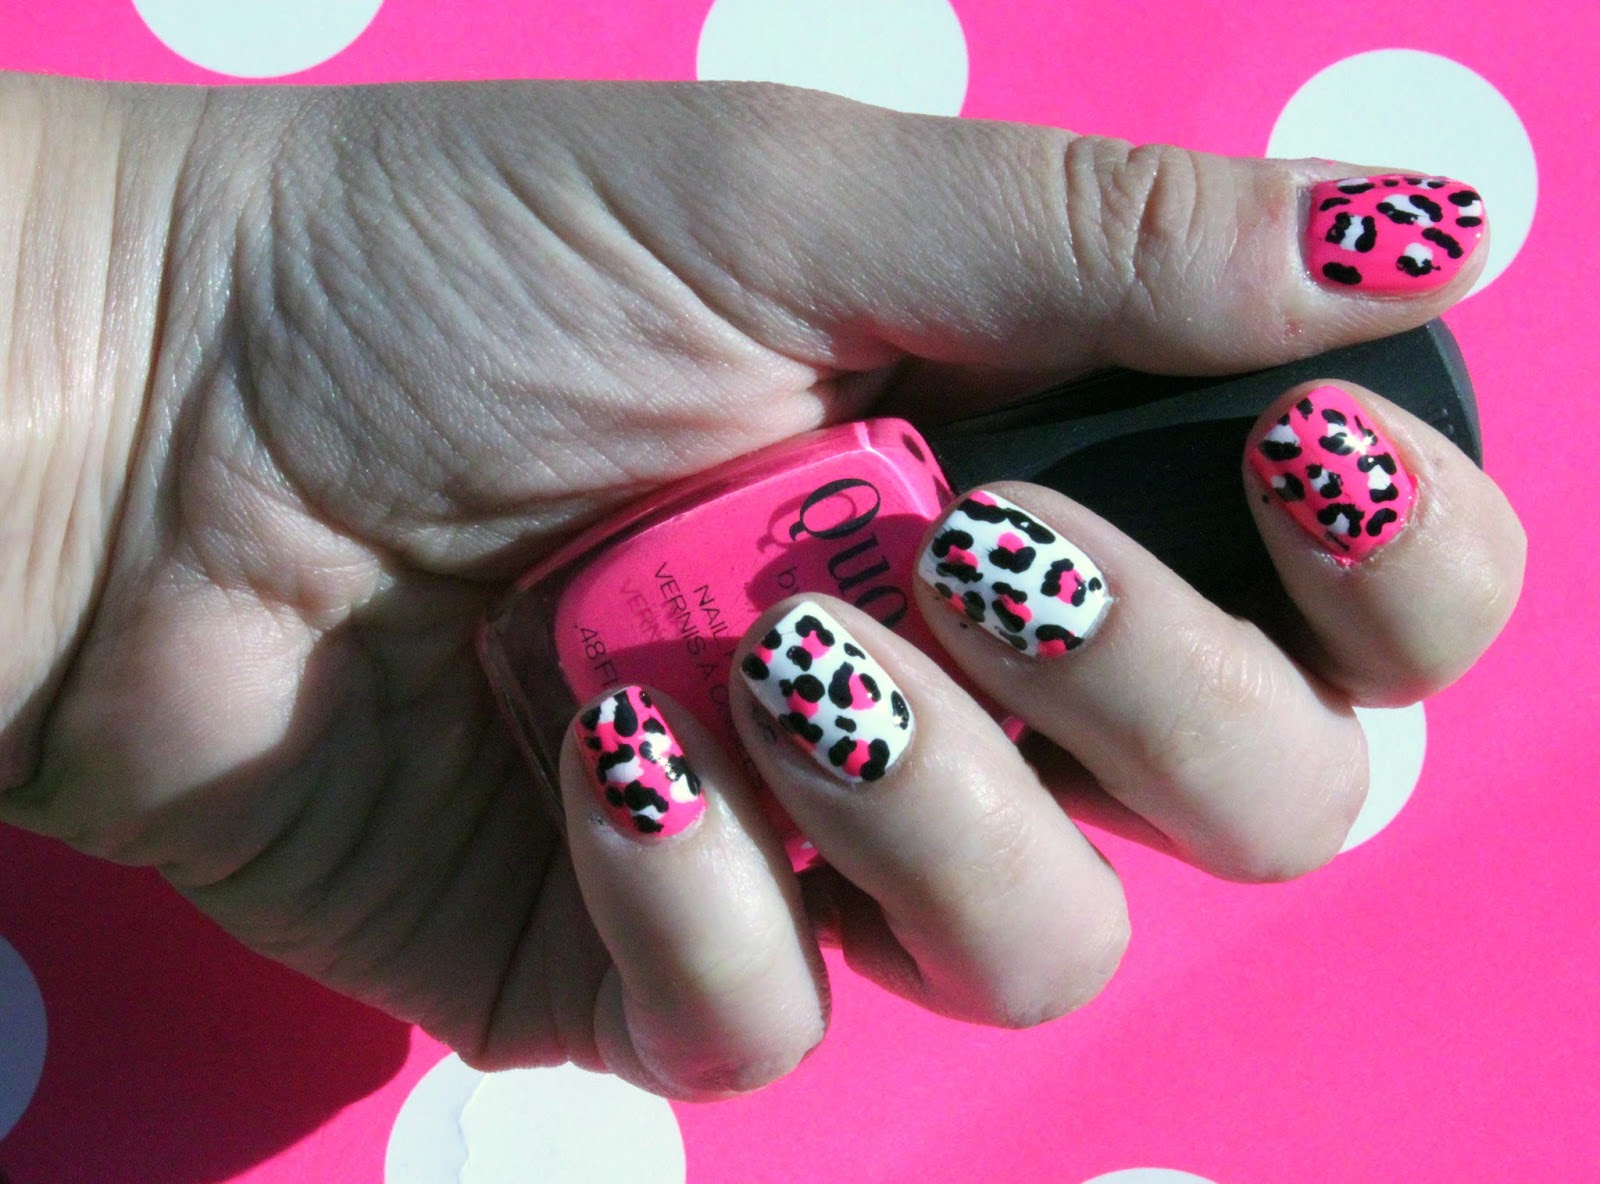 Neon pink and white leopard print nails beauty by birdy for the last six months i have been bundled up in dark colours and now i find myself gravitating to anything bright solutioingenieria Choice Image